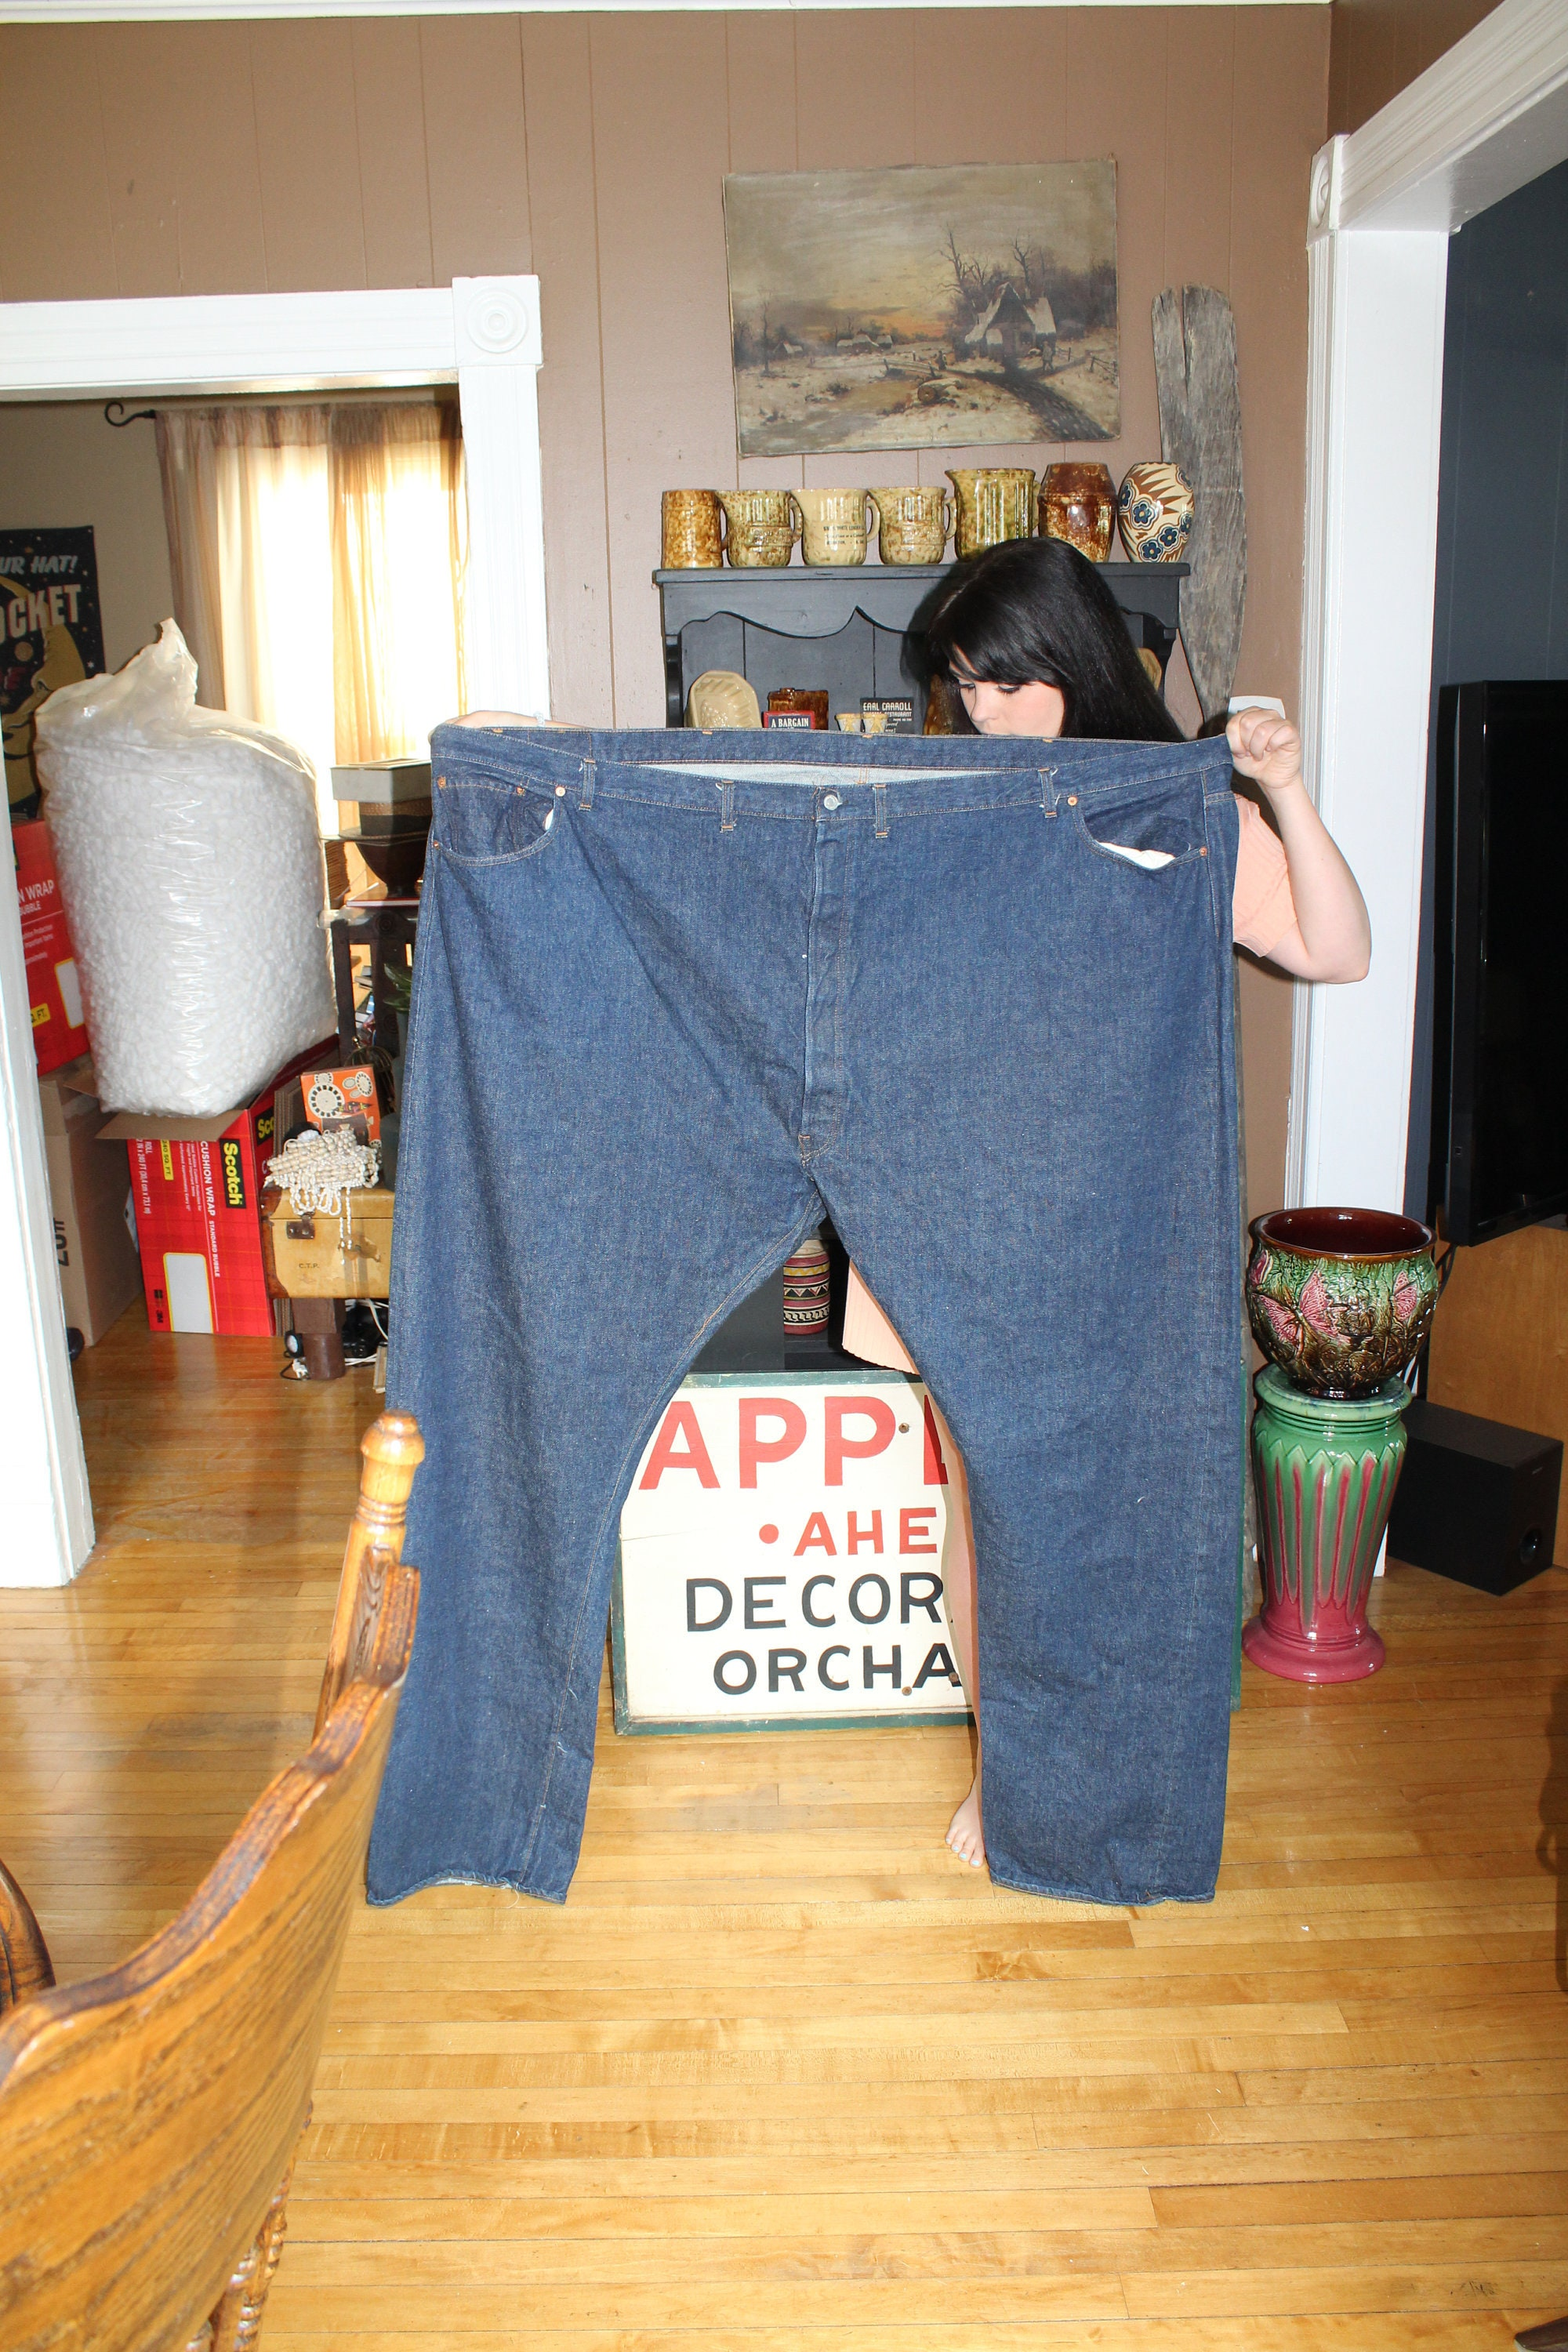 d8630bf239e3a Vintage Levis Jeans Huge Store Display 76 x 45 Inches 1970s